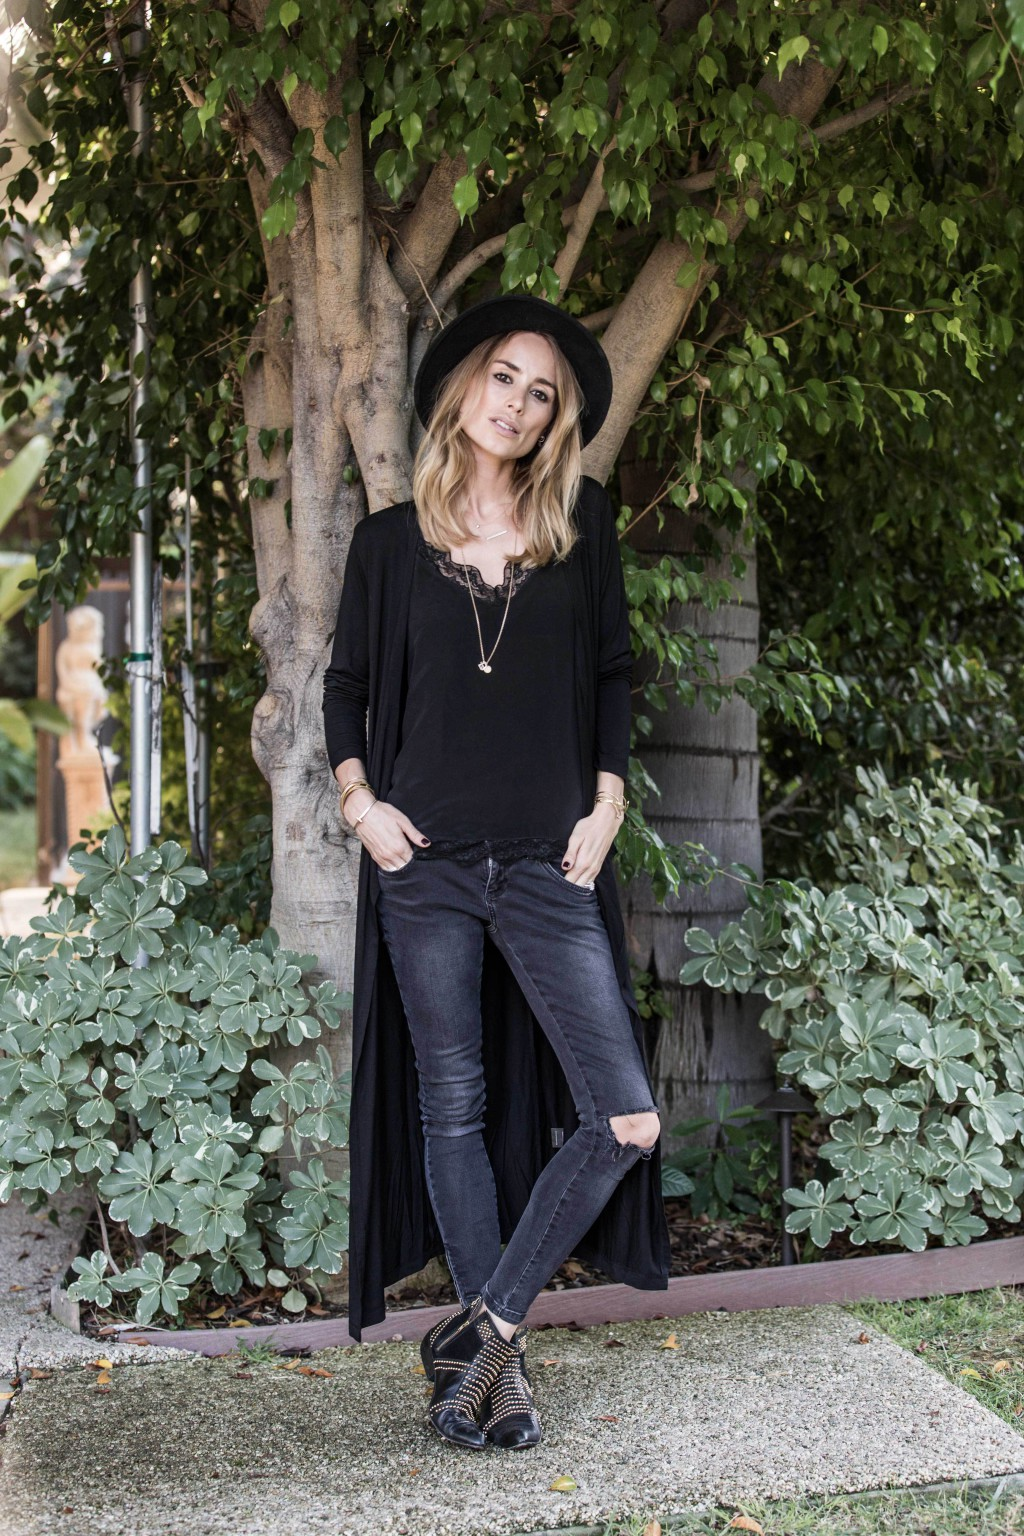 Anine Bing in a black dress converted into a long cardigan created by Pamela Bellafesta For Stylein